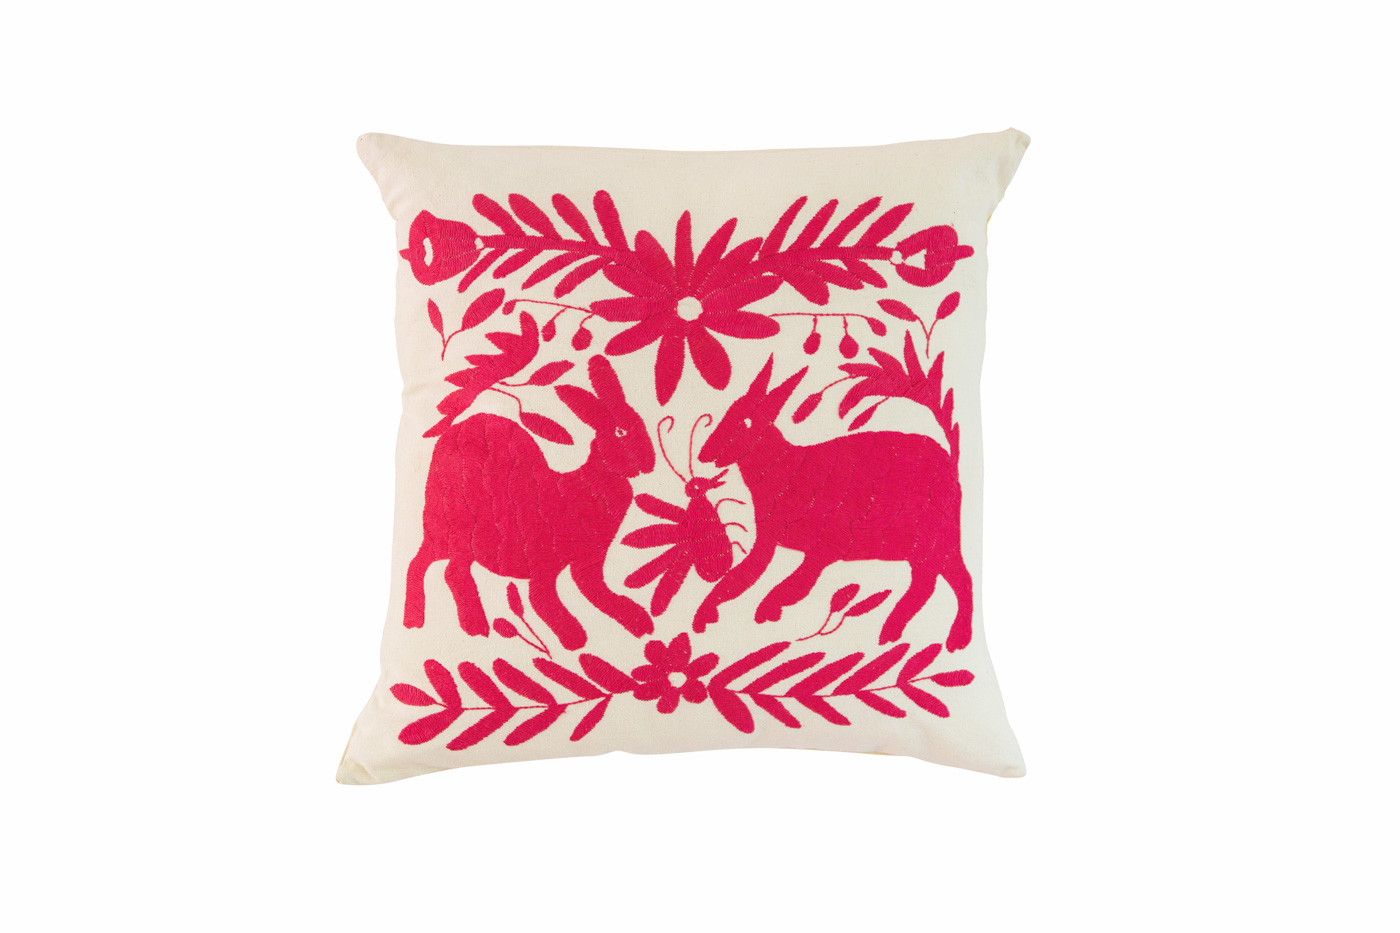 Mexican Otomi Mexican cushion with fuchsia rabbits